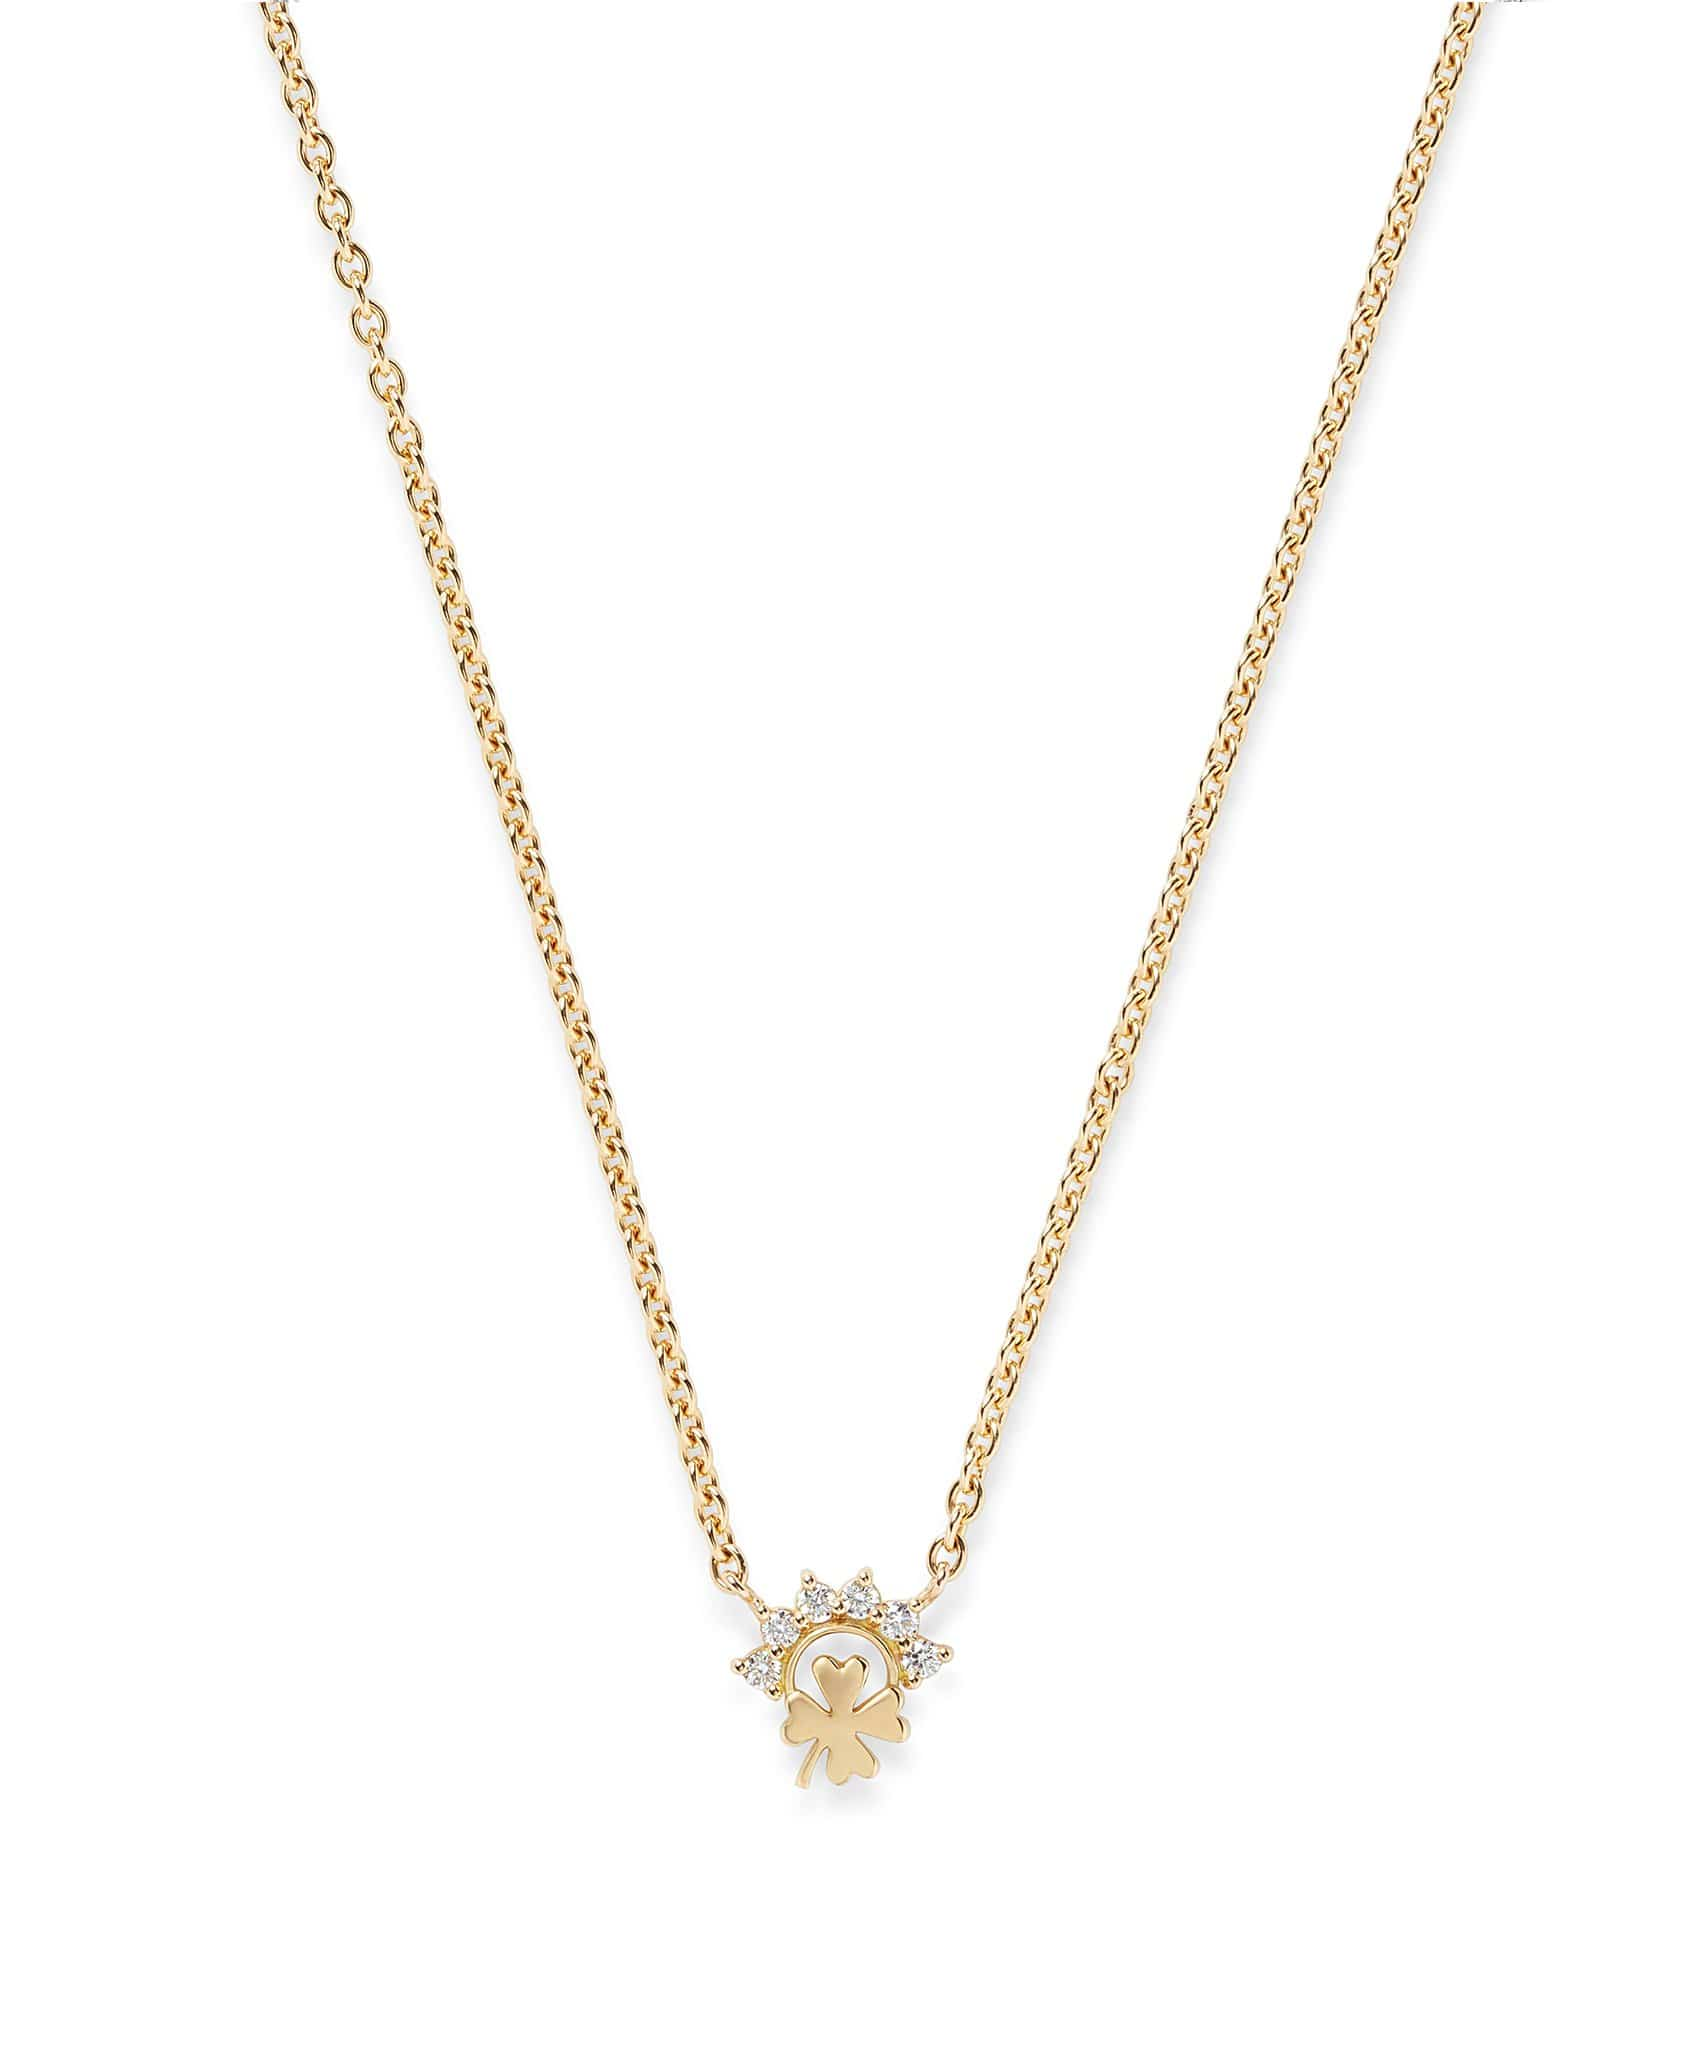 Small Luck Pendant: Discover Luxury Fine Jewelry | Nouvel Heritage || Yellow Gold